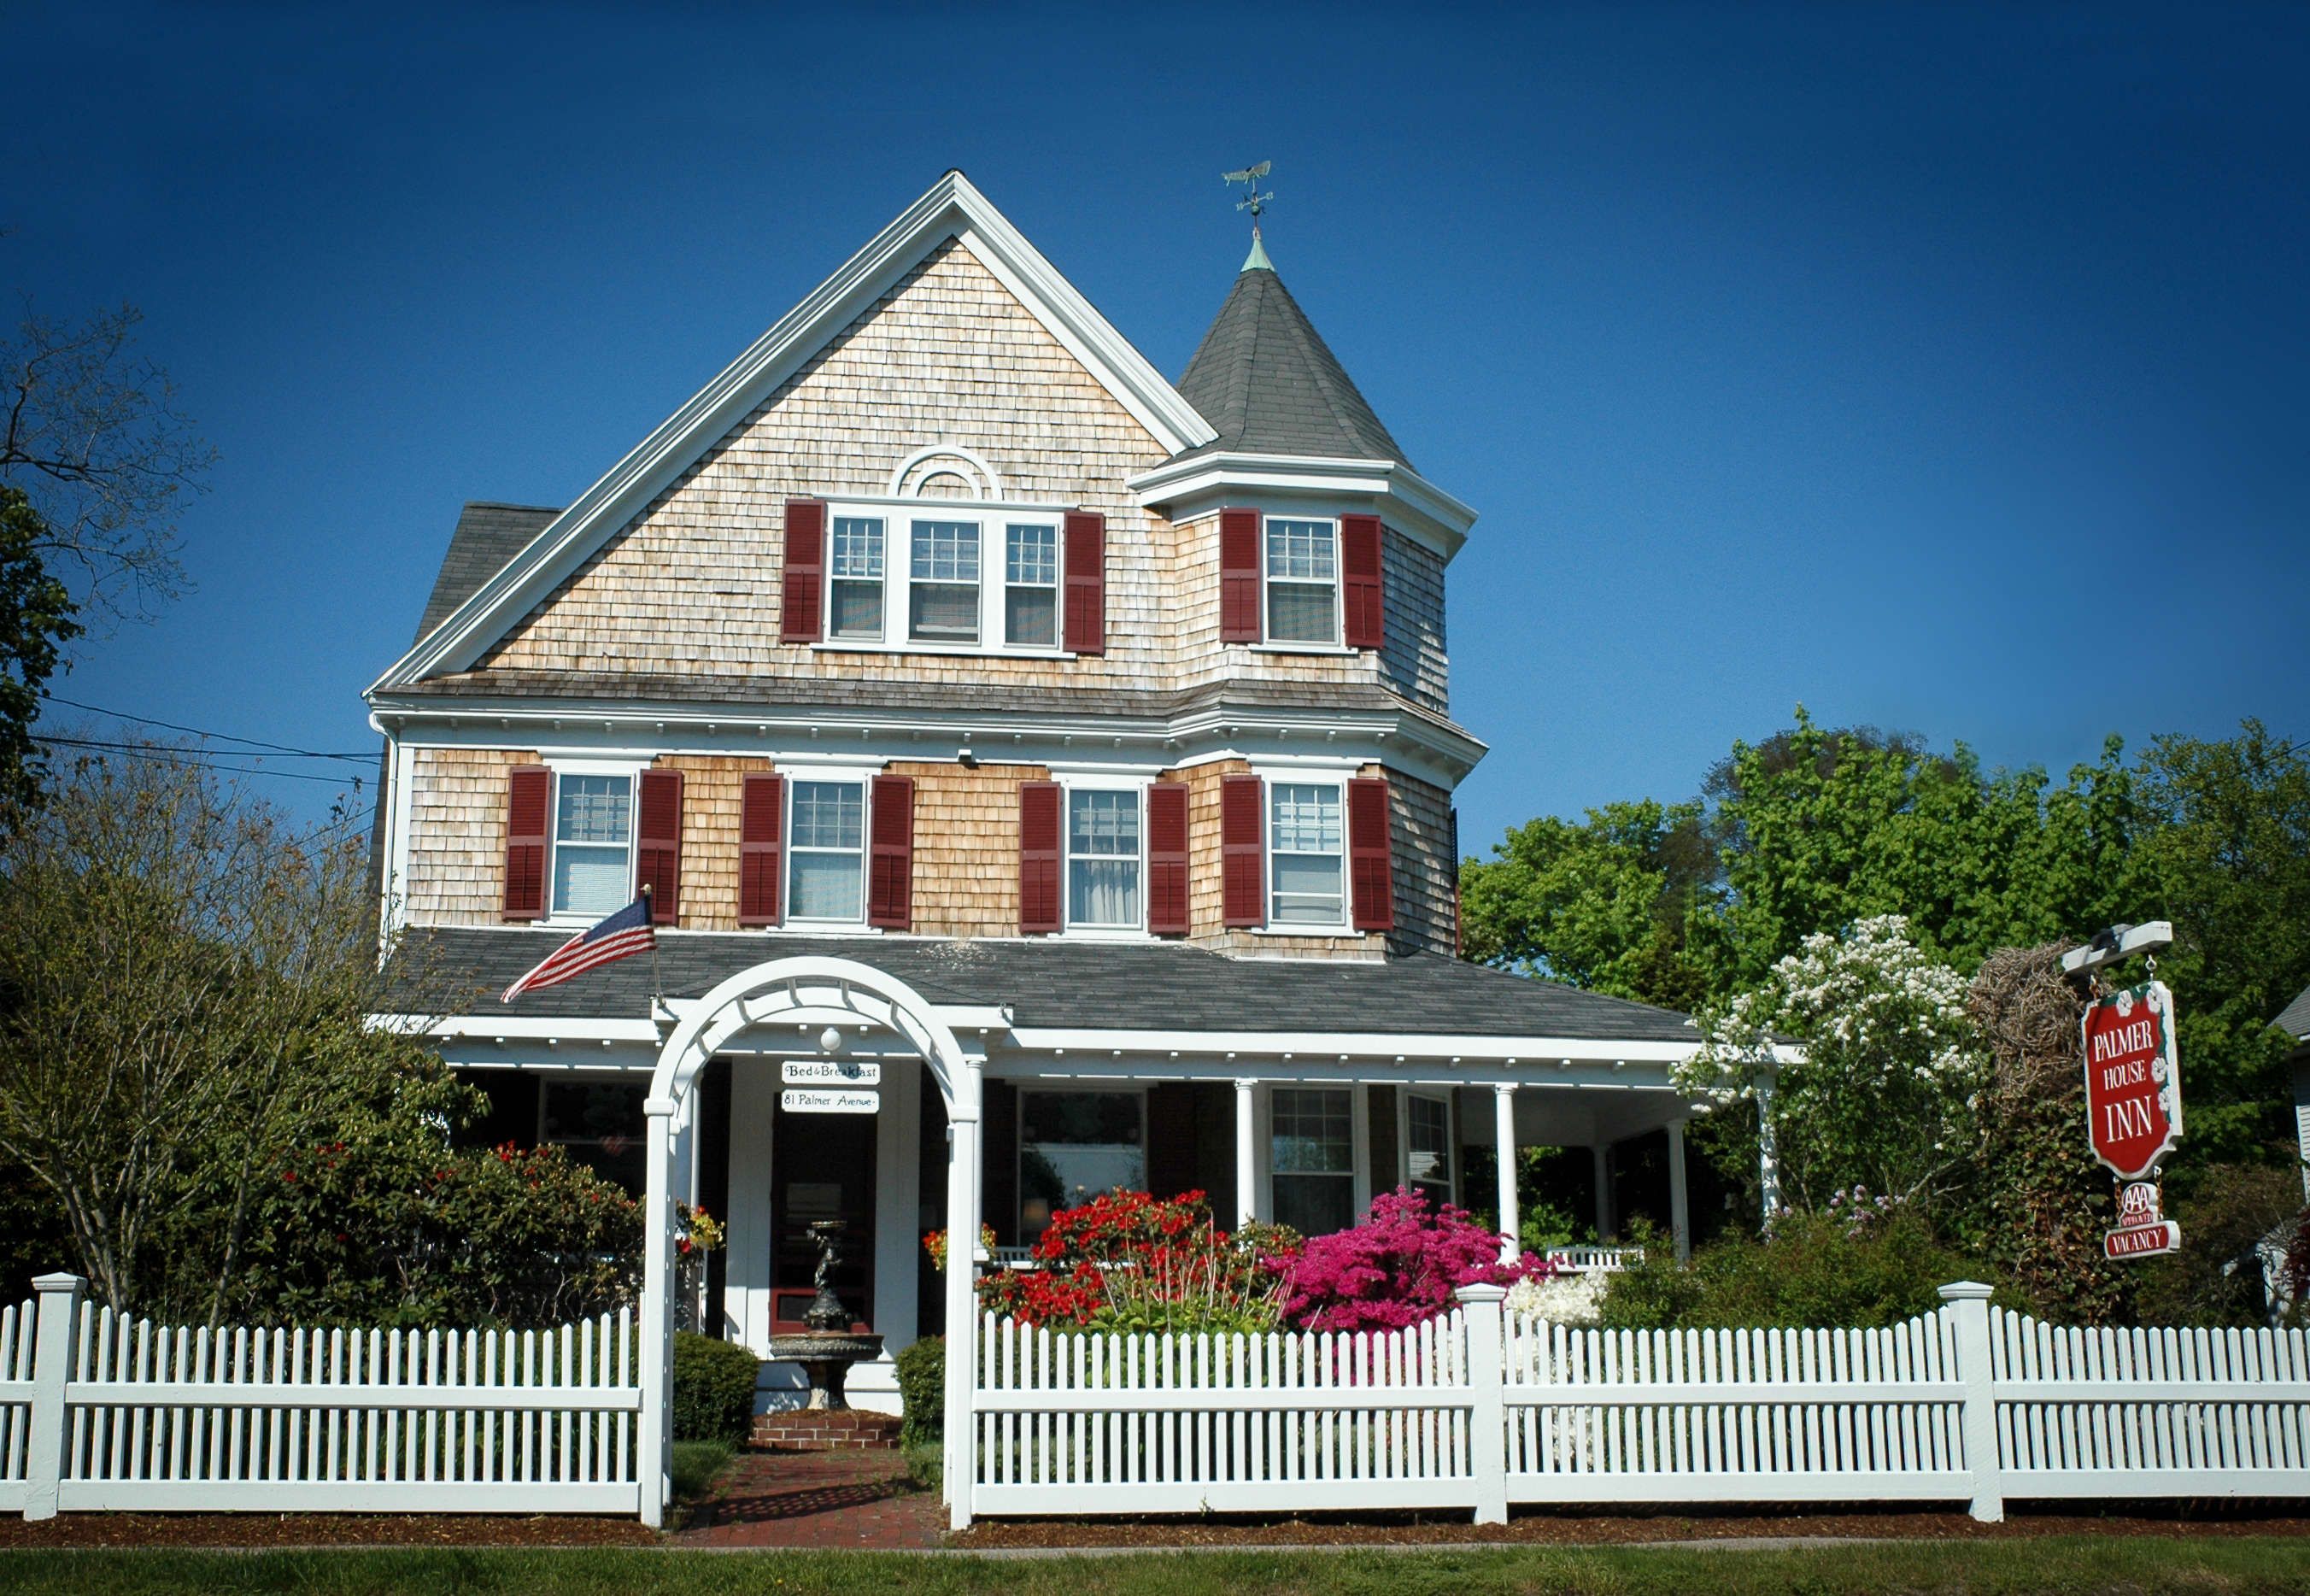 Palmer house inn a romantic cape cod bed and breakfast for Palmer homes